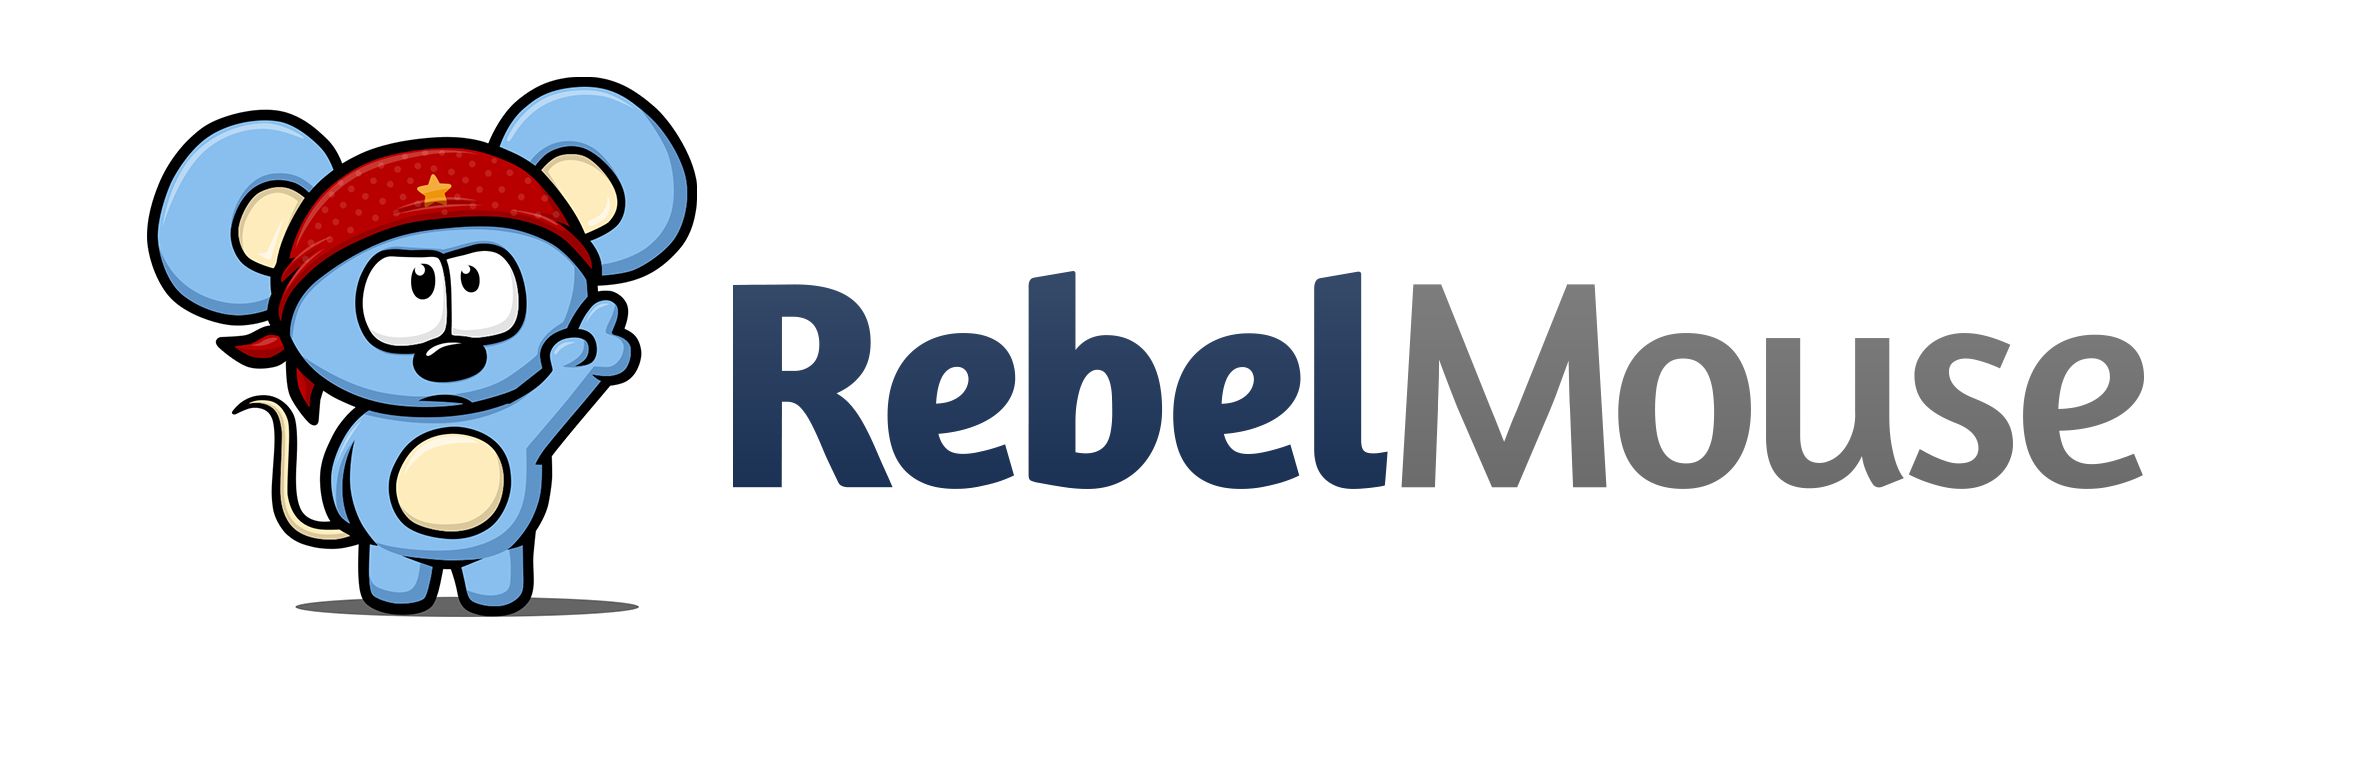 Rebelmouse logo